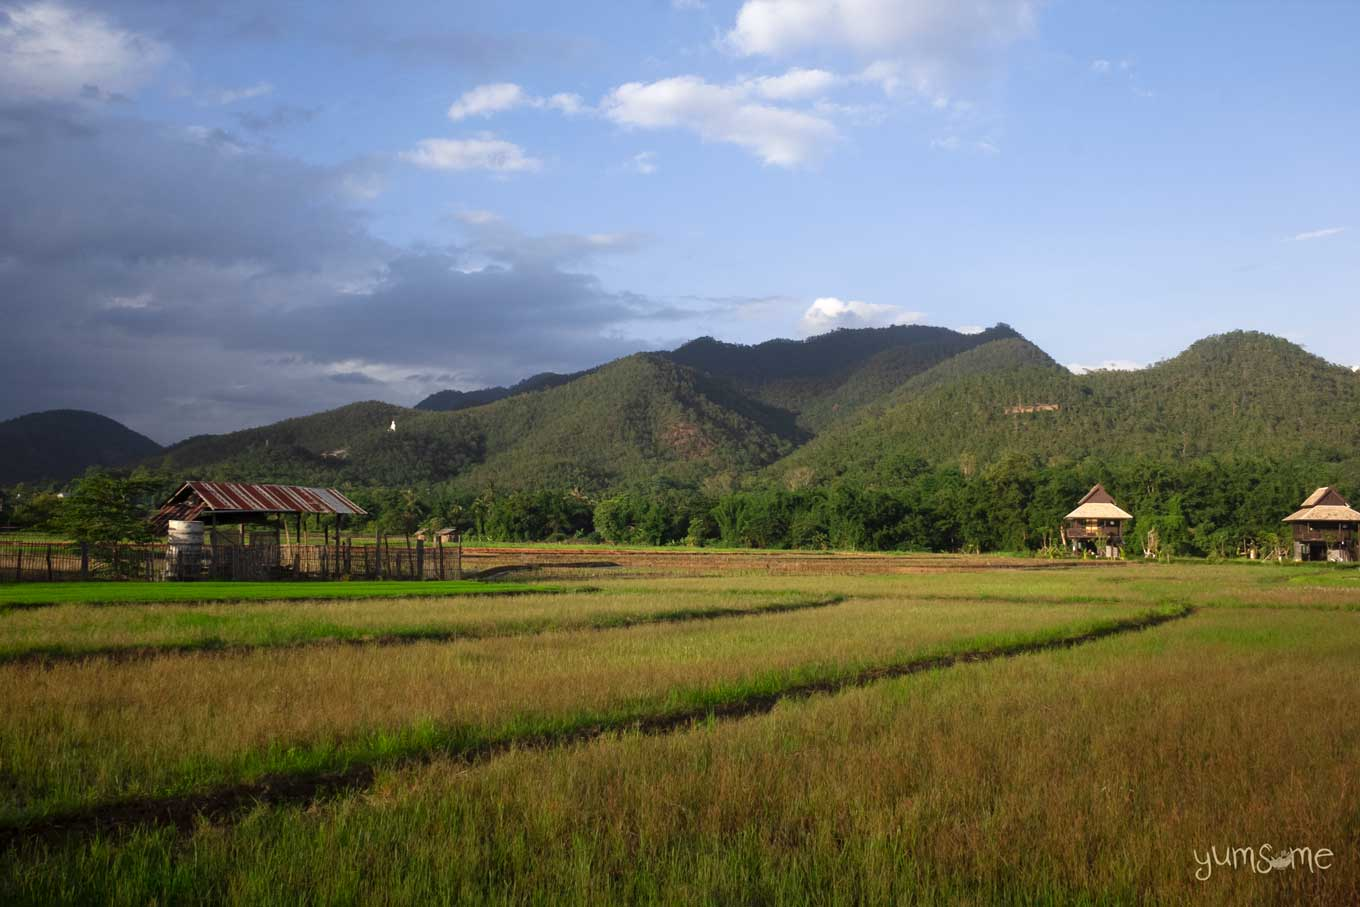 Rice fields in Northern Thailand with mountains in the background.